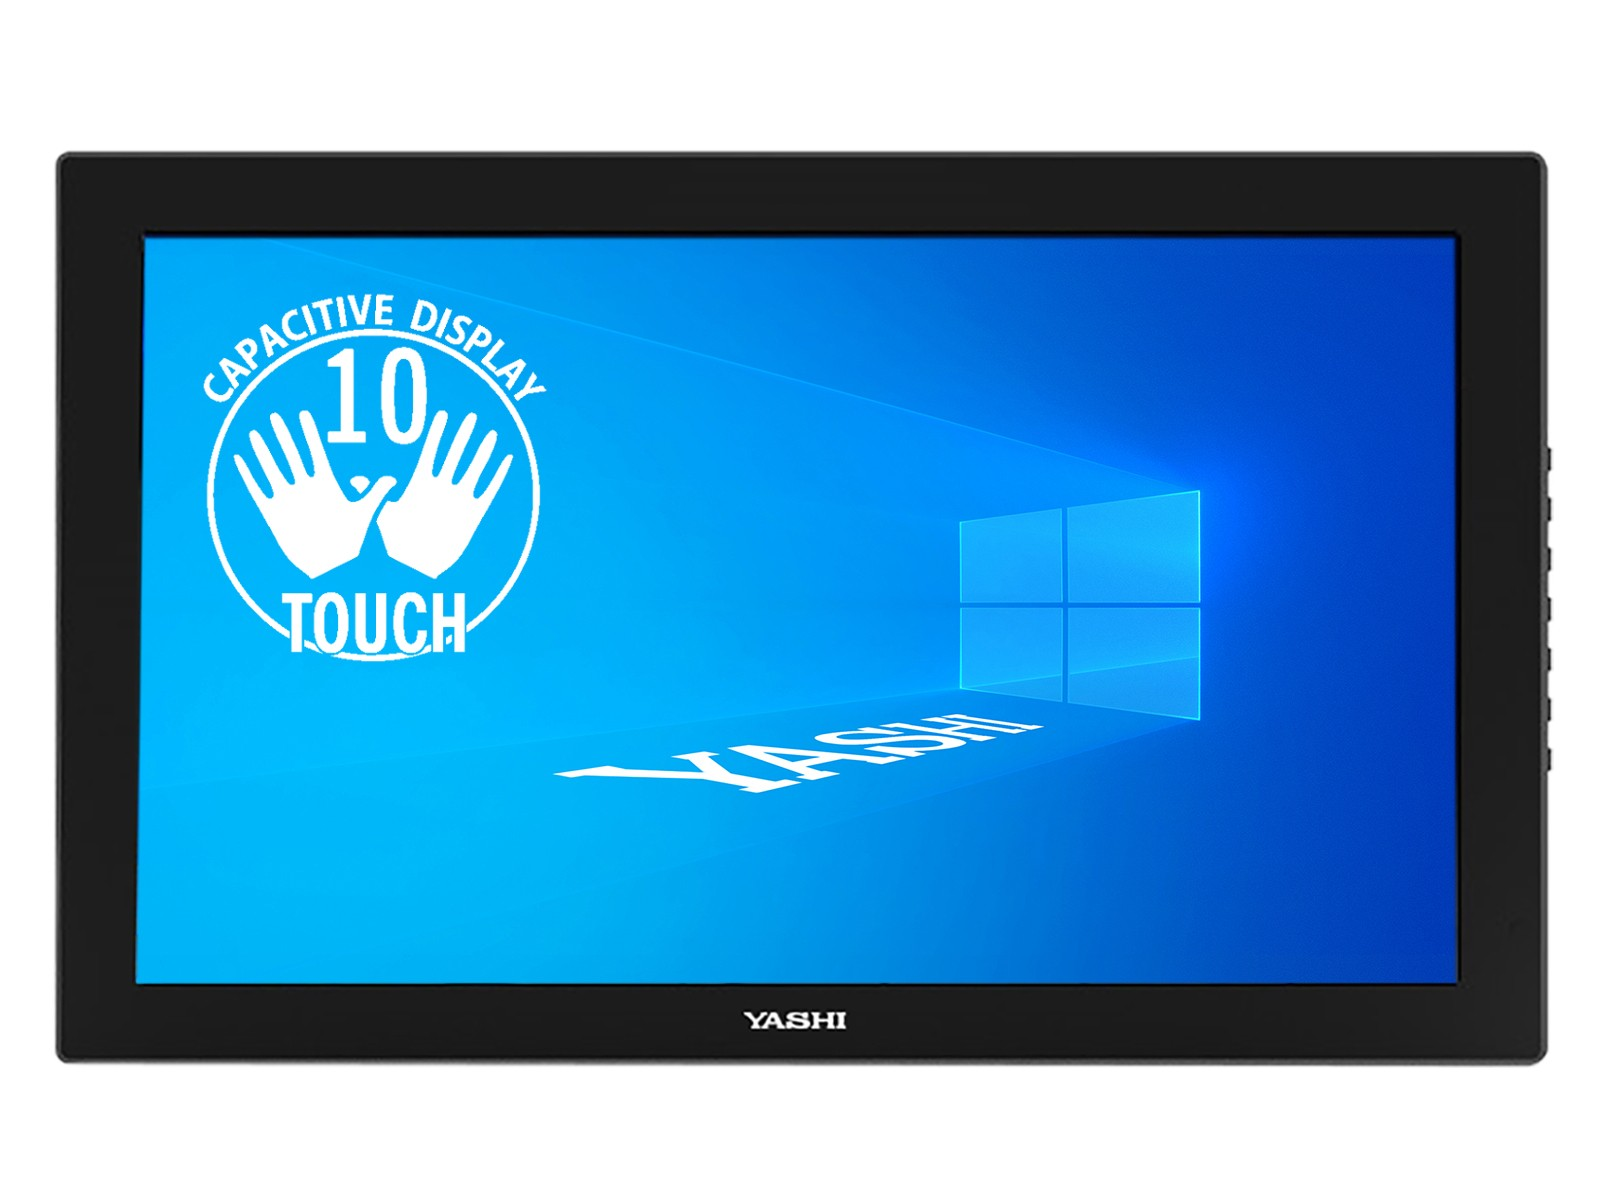 YASHI MONITOR TOUCH 23,6 LED IPS 16:9 FHD 1000:1 250 CD/M 60HZ HDMI MINI 10 TOCCHI CAPACITIVO SD CARD WEBCAM